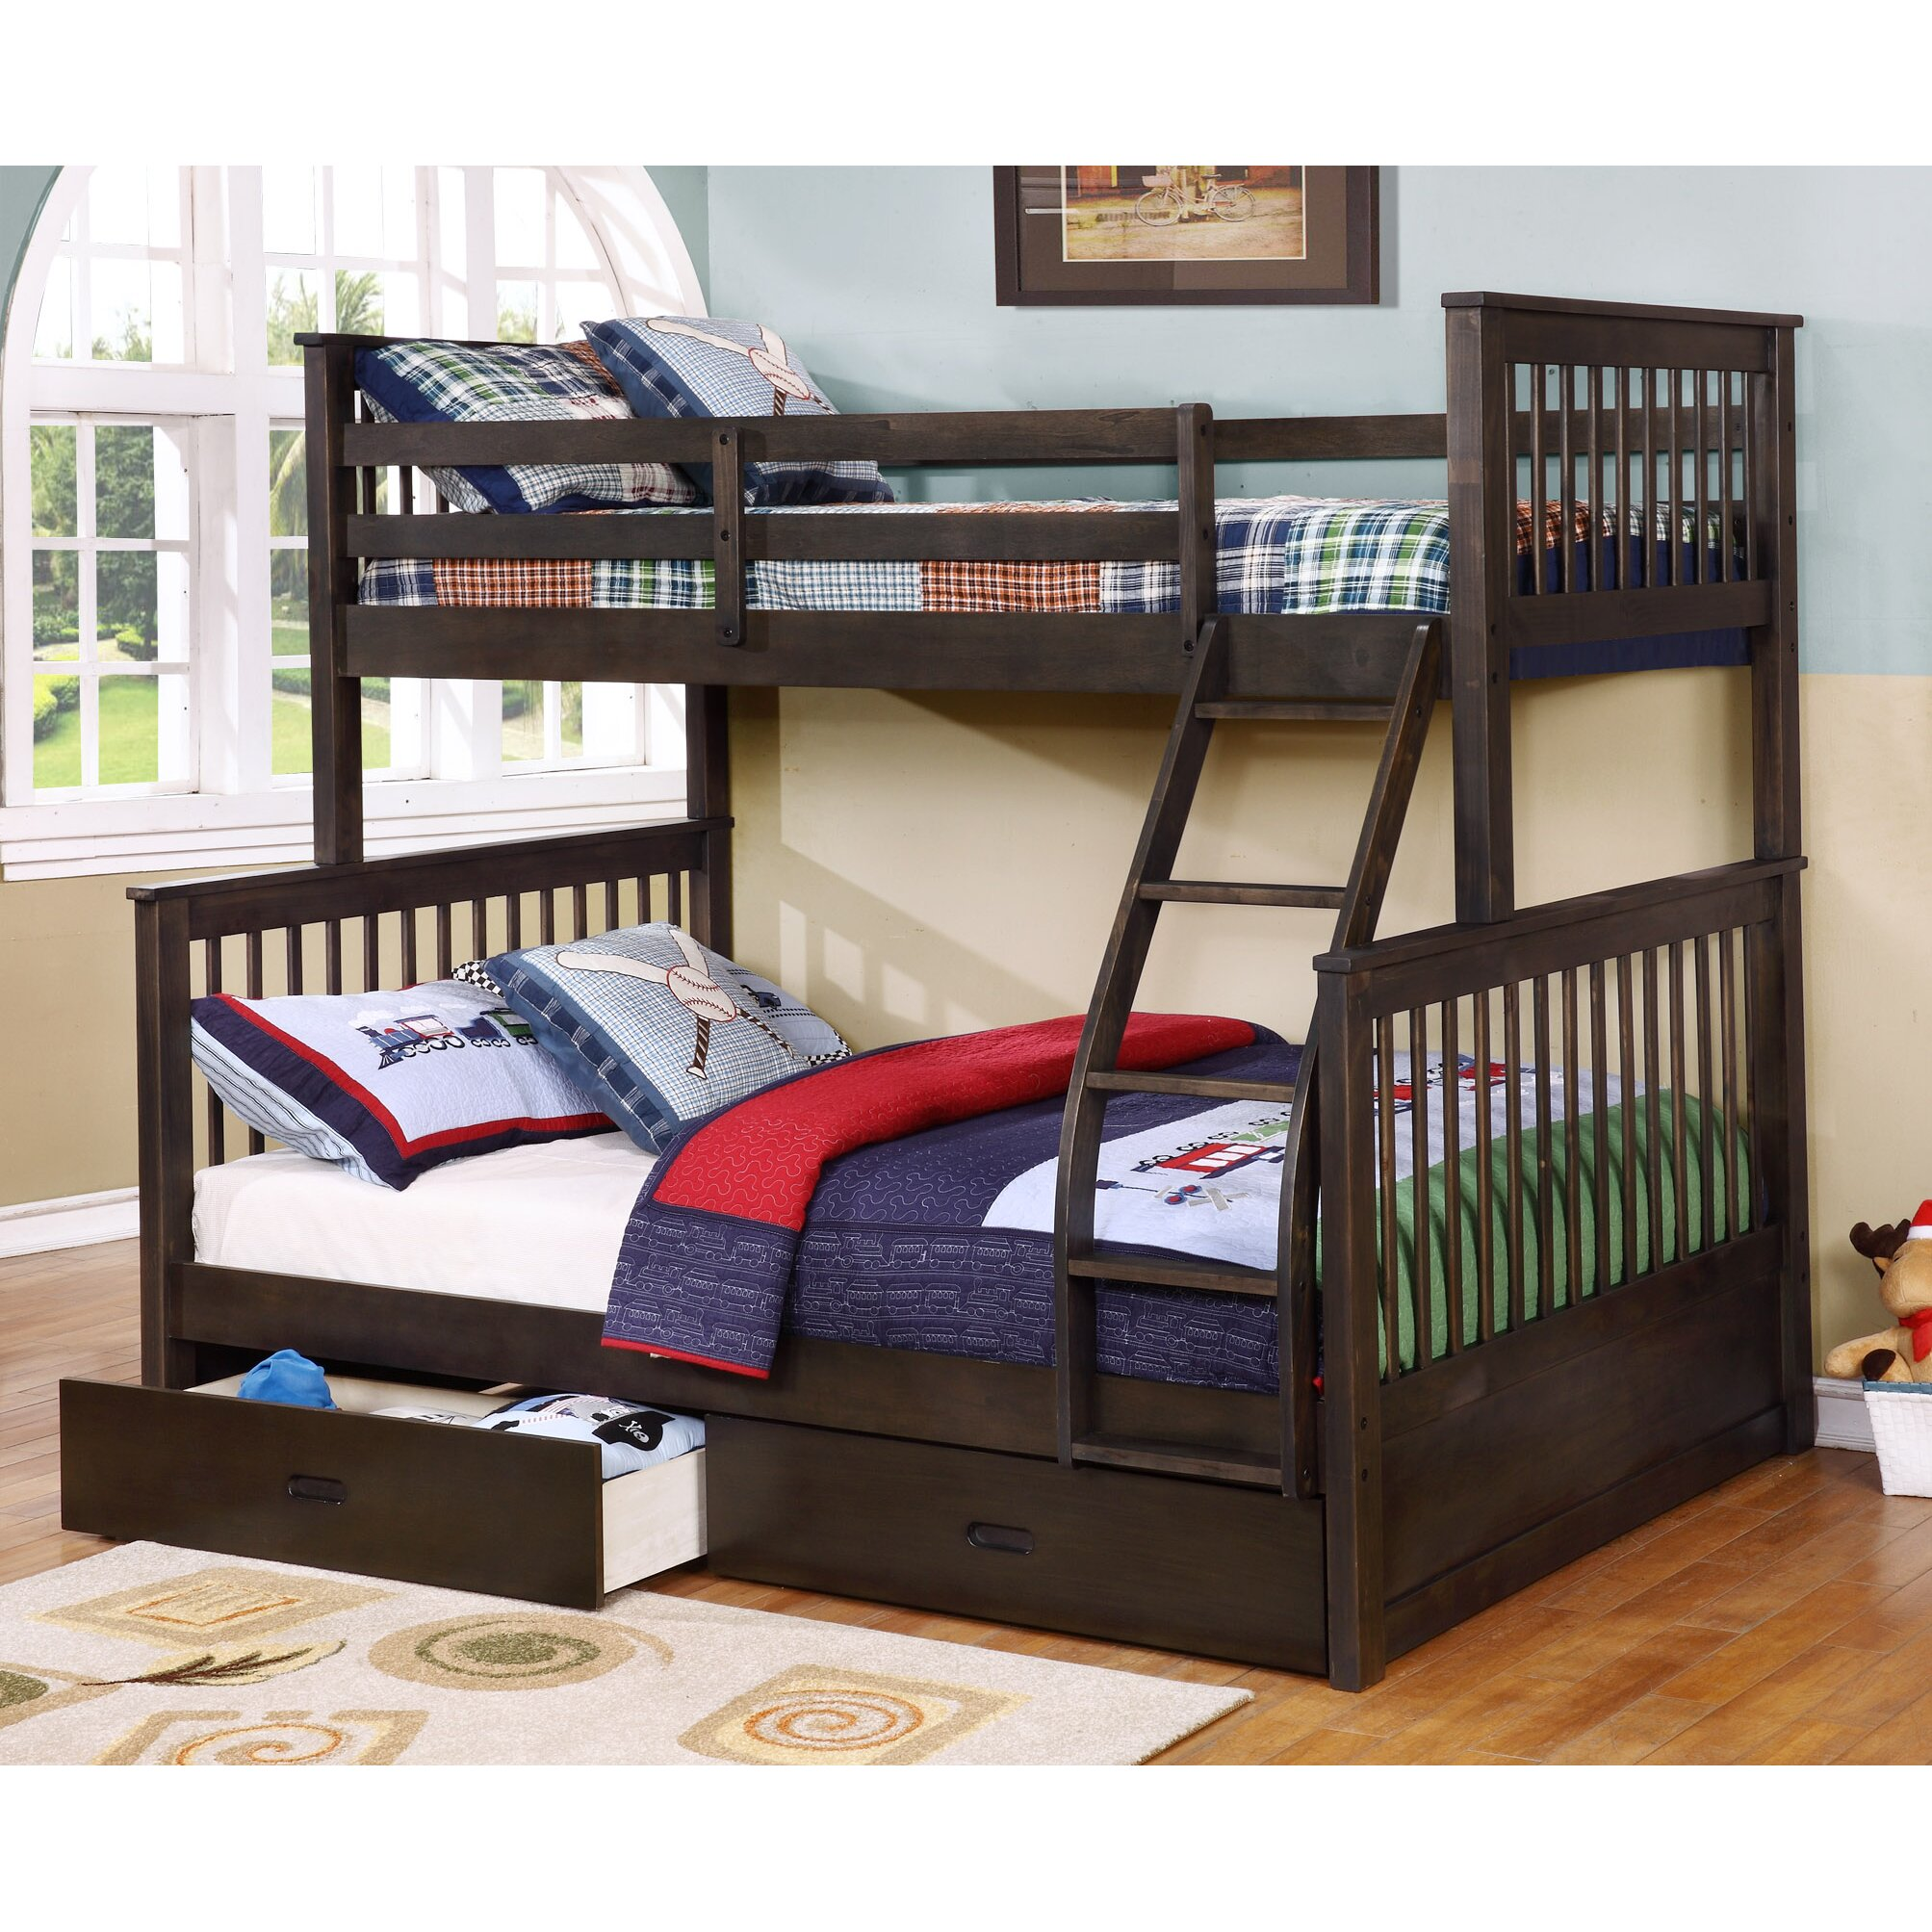 Double bunk beds with slide - Double Bunk Beds With Slide 44